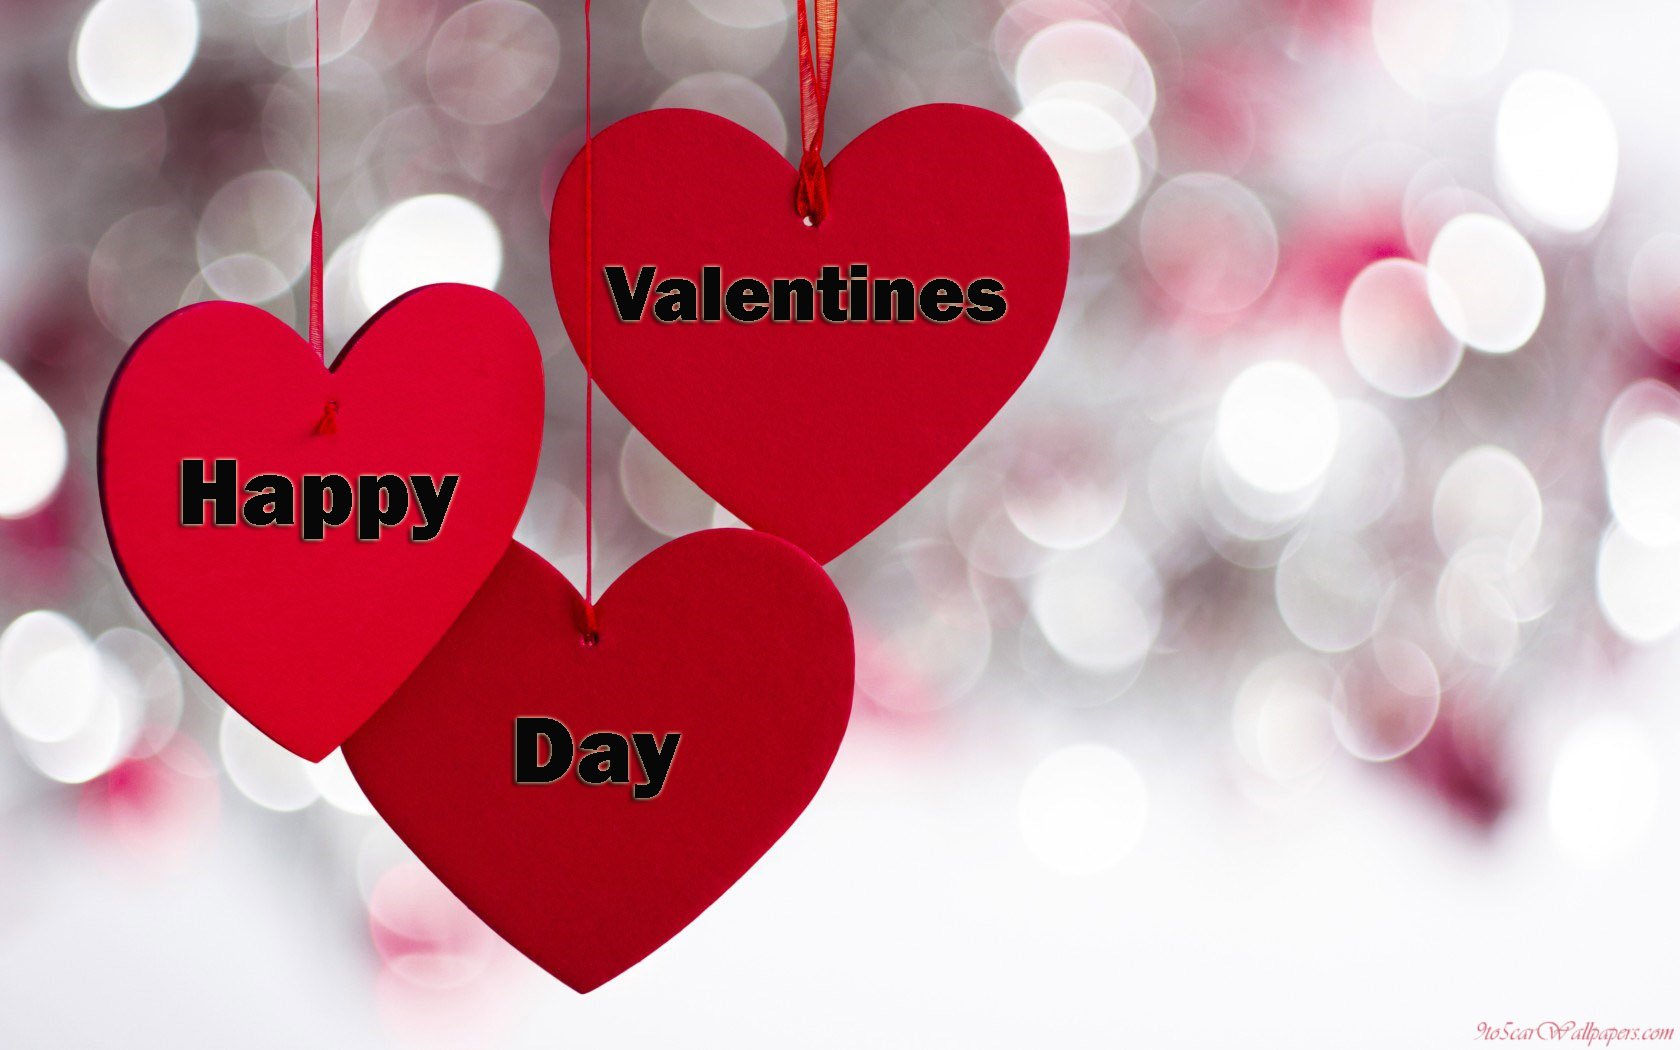 valentine-day-images-2018